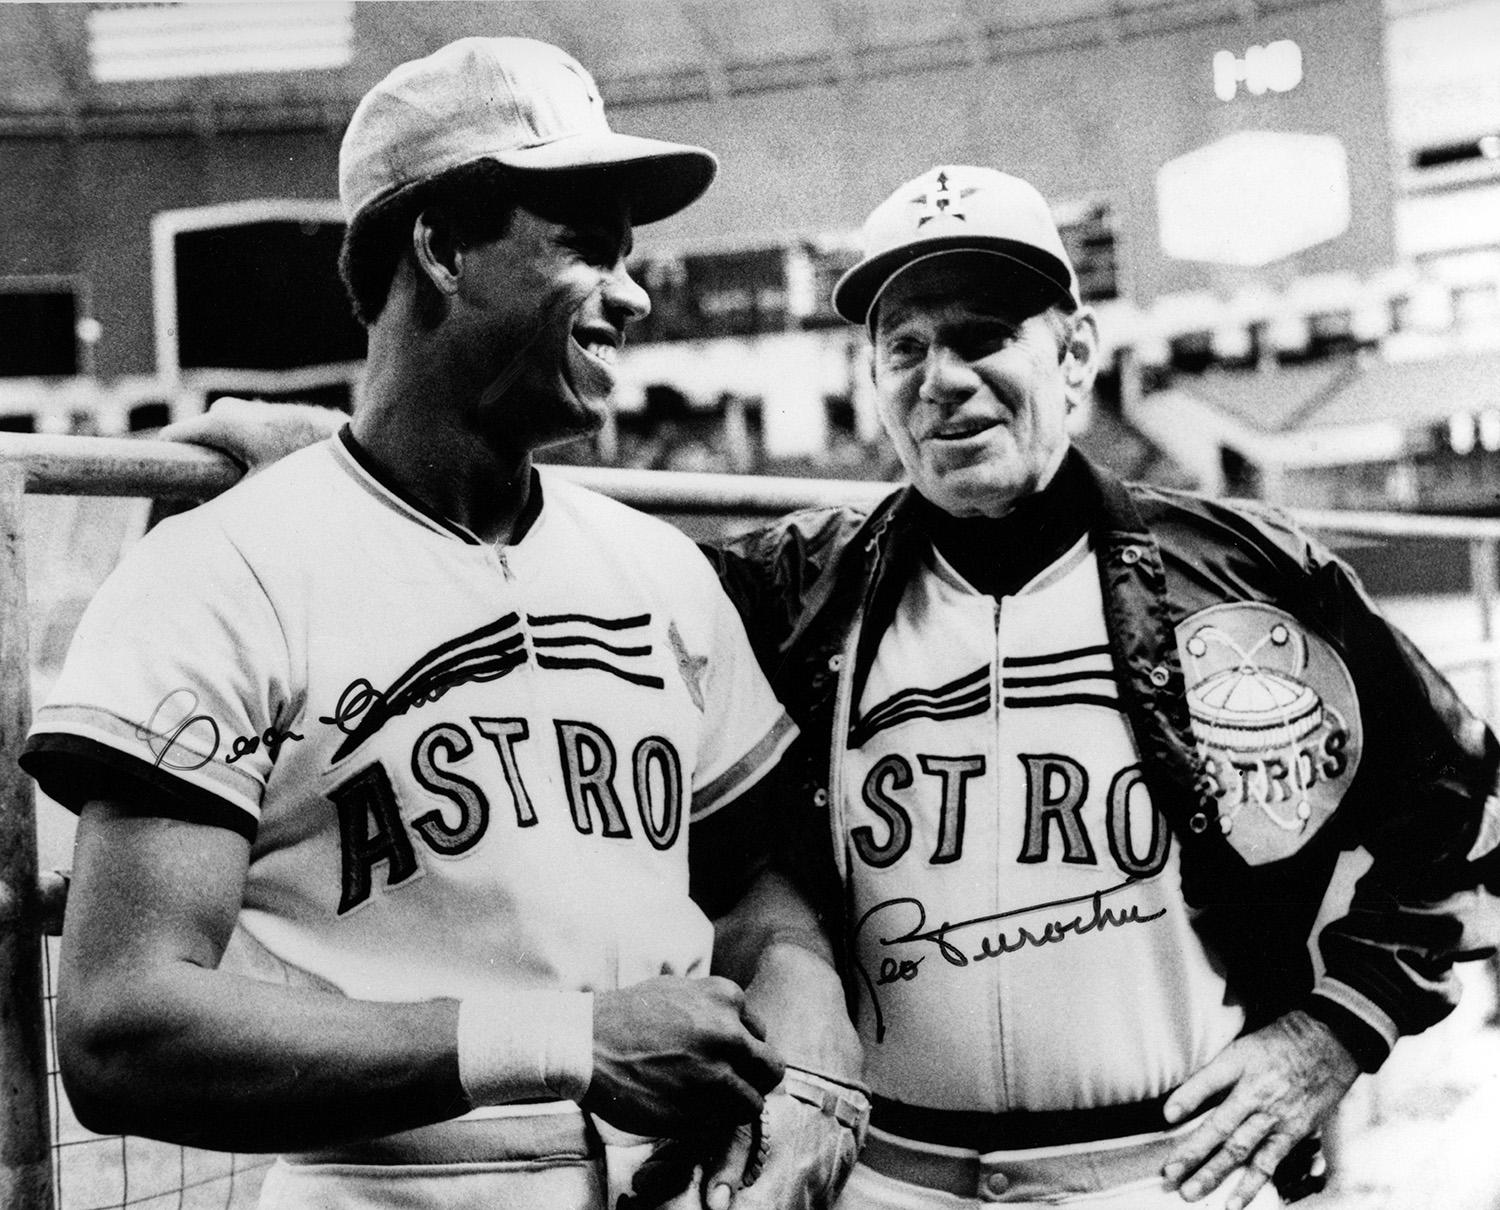 Houston Astros manager Leo Durocher (right) compared César Cedeño to Willie Mays, saying that Cedeño had power, speed and a strong arm. (National Baseball Hall of Fame and Museum)